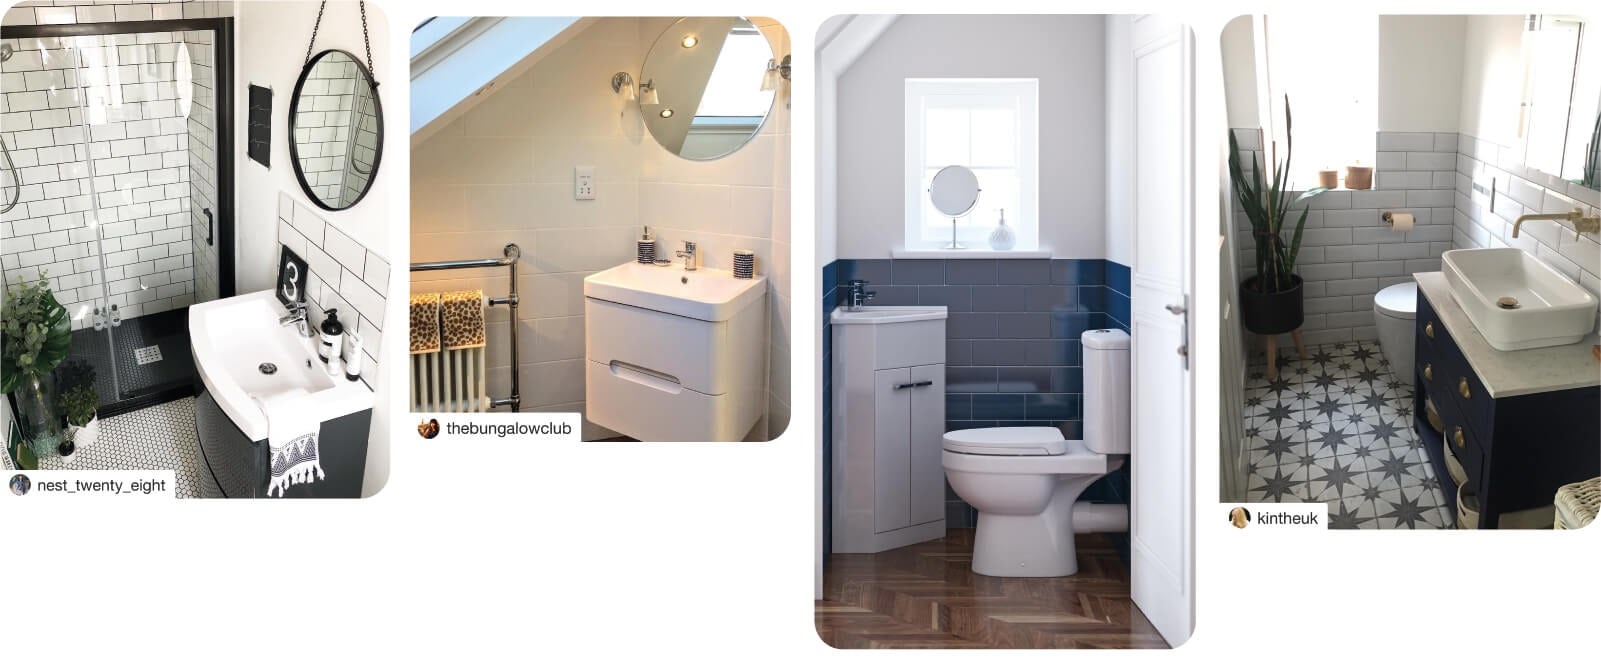 Small bathroom inspiration from VictoriaPlum.com customers